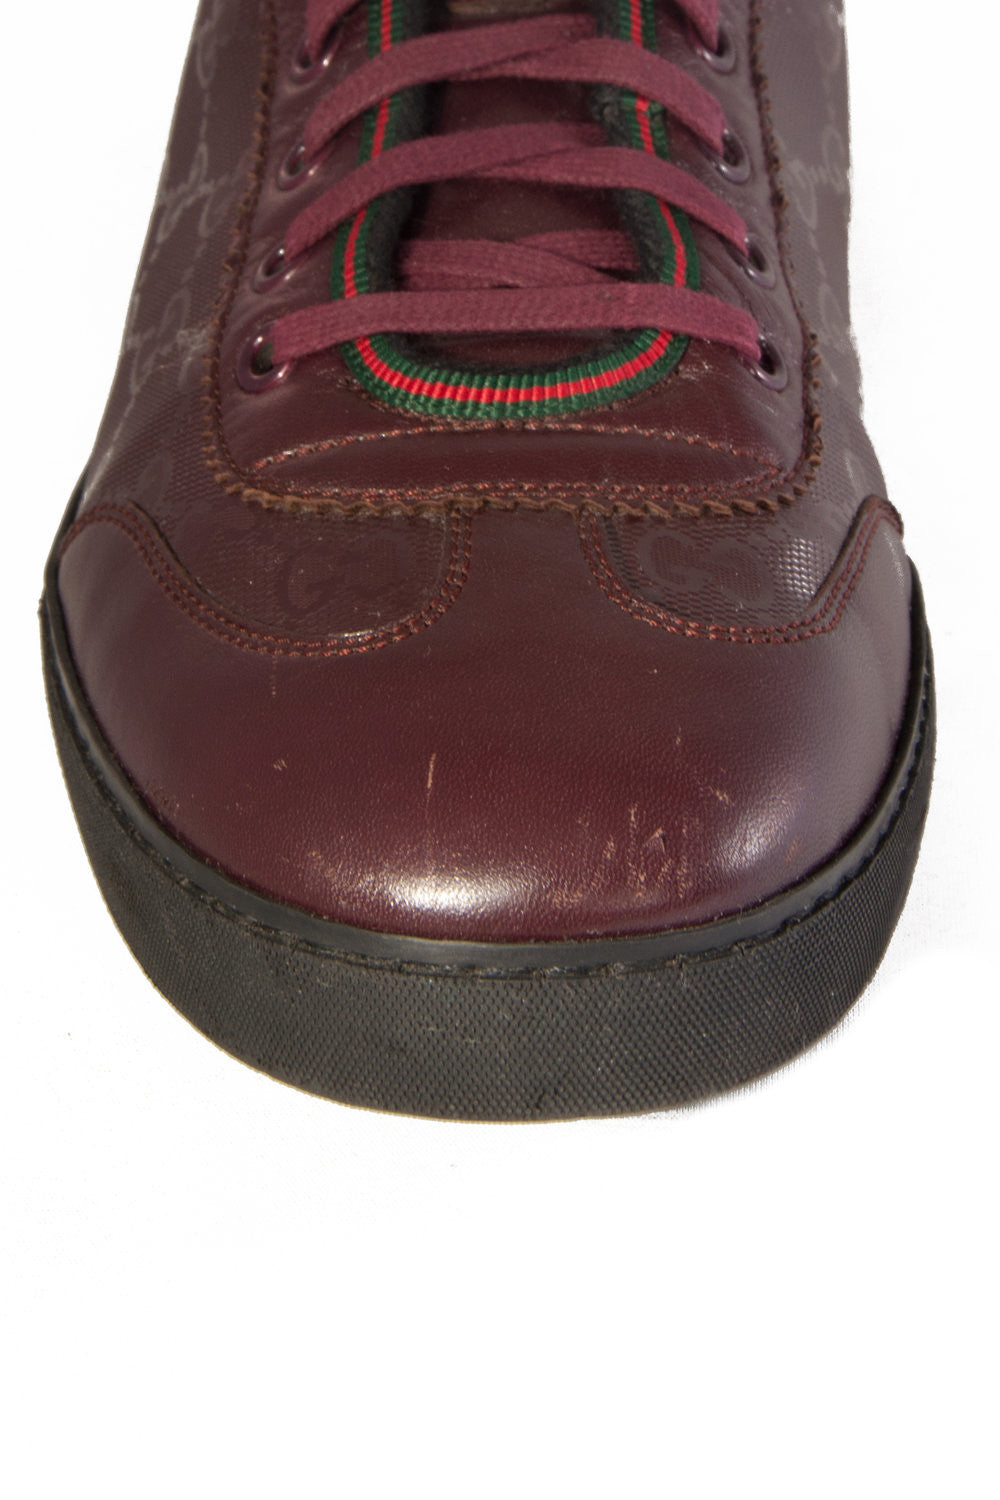 maroon gucci shoes toe vamp